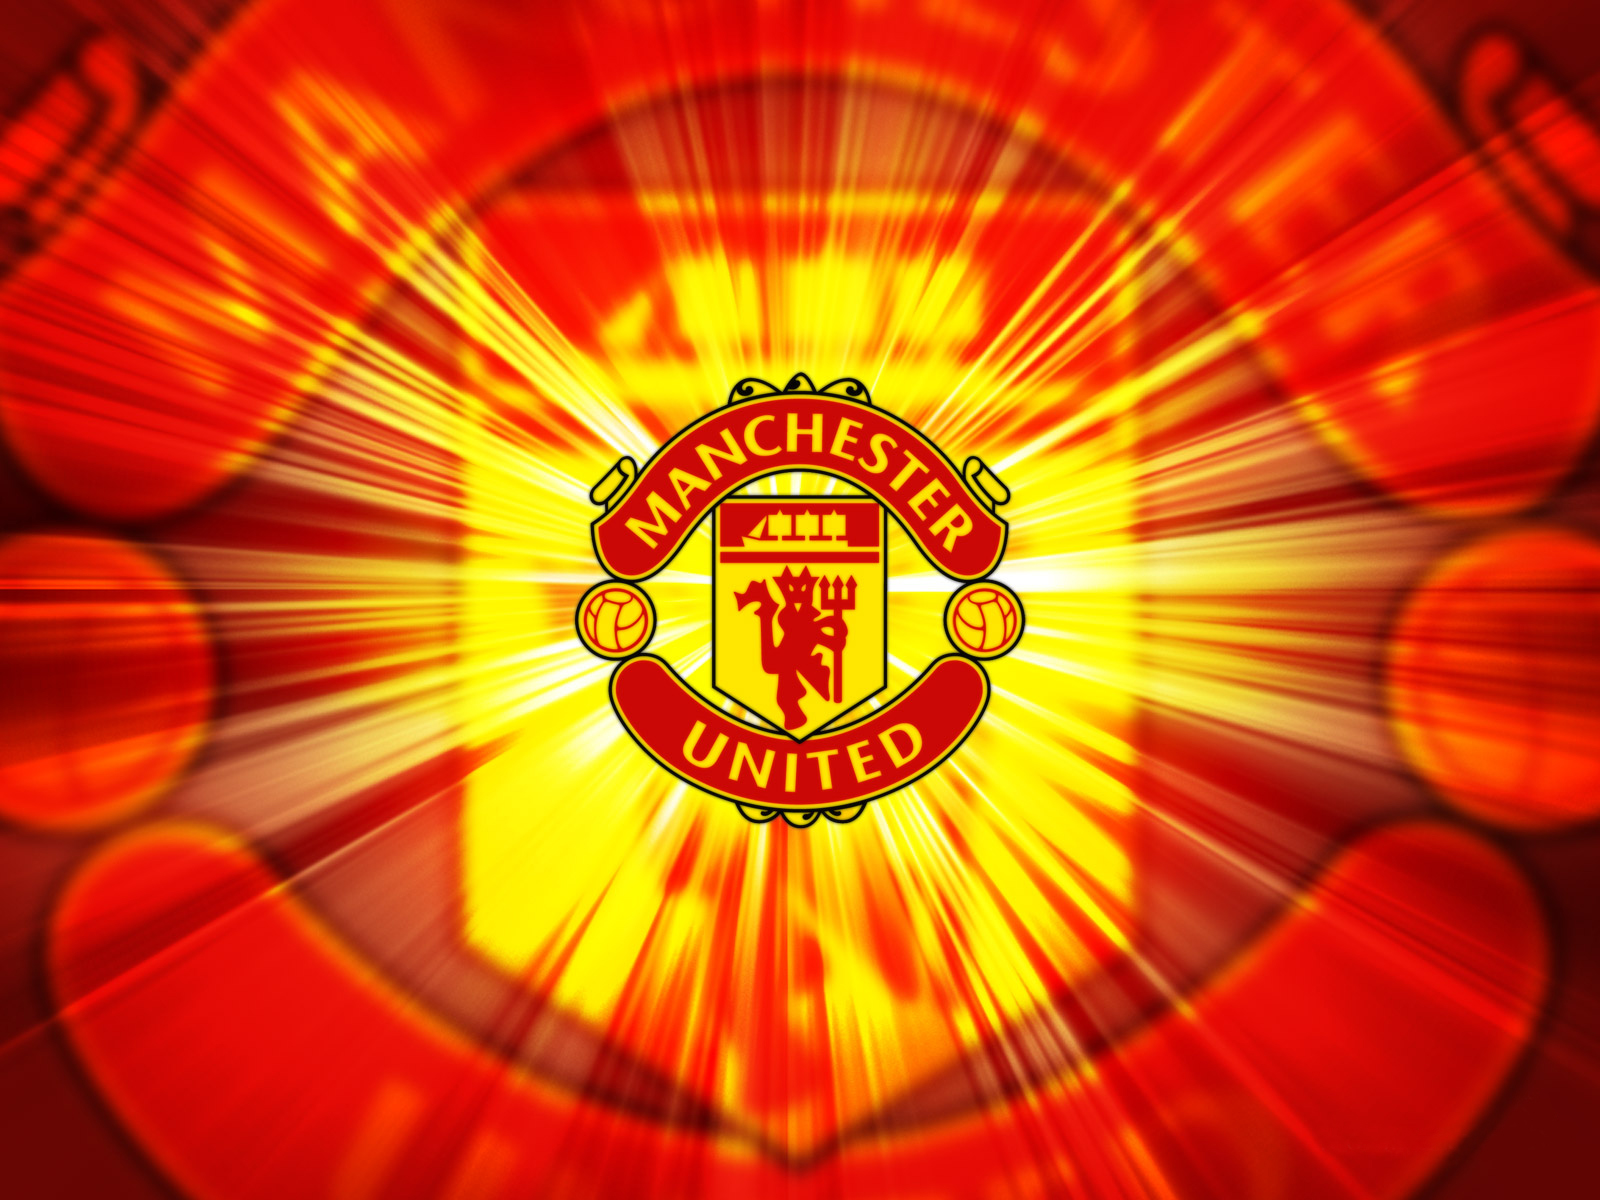 Manchester United Wallpaper Seven Share 1600x1200